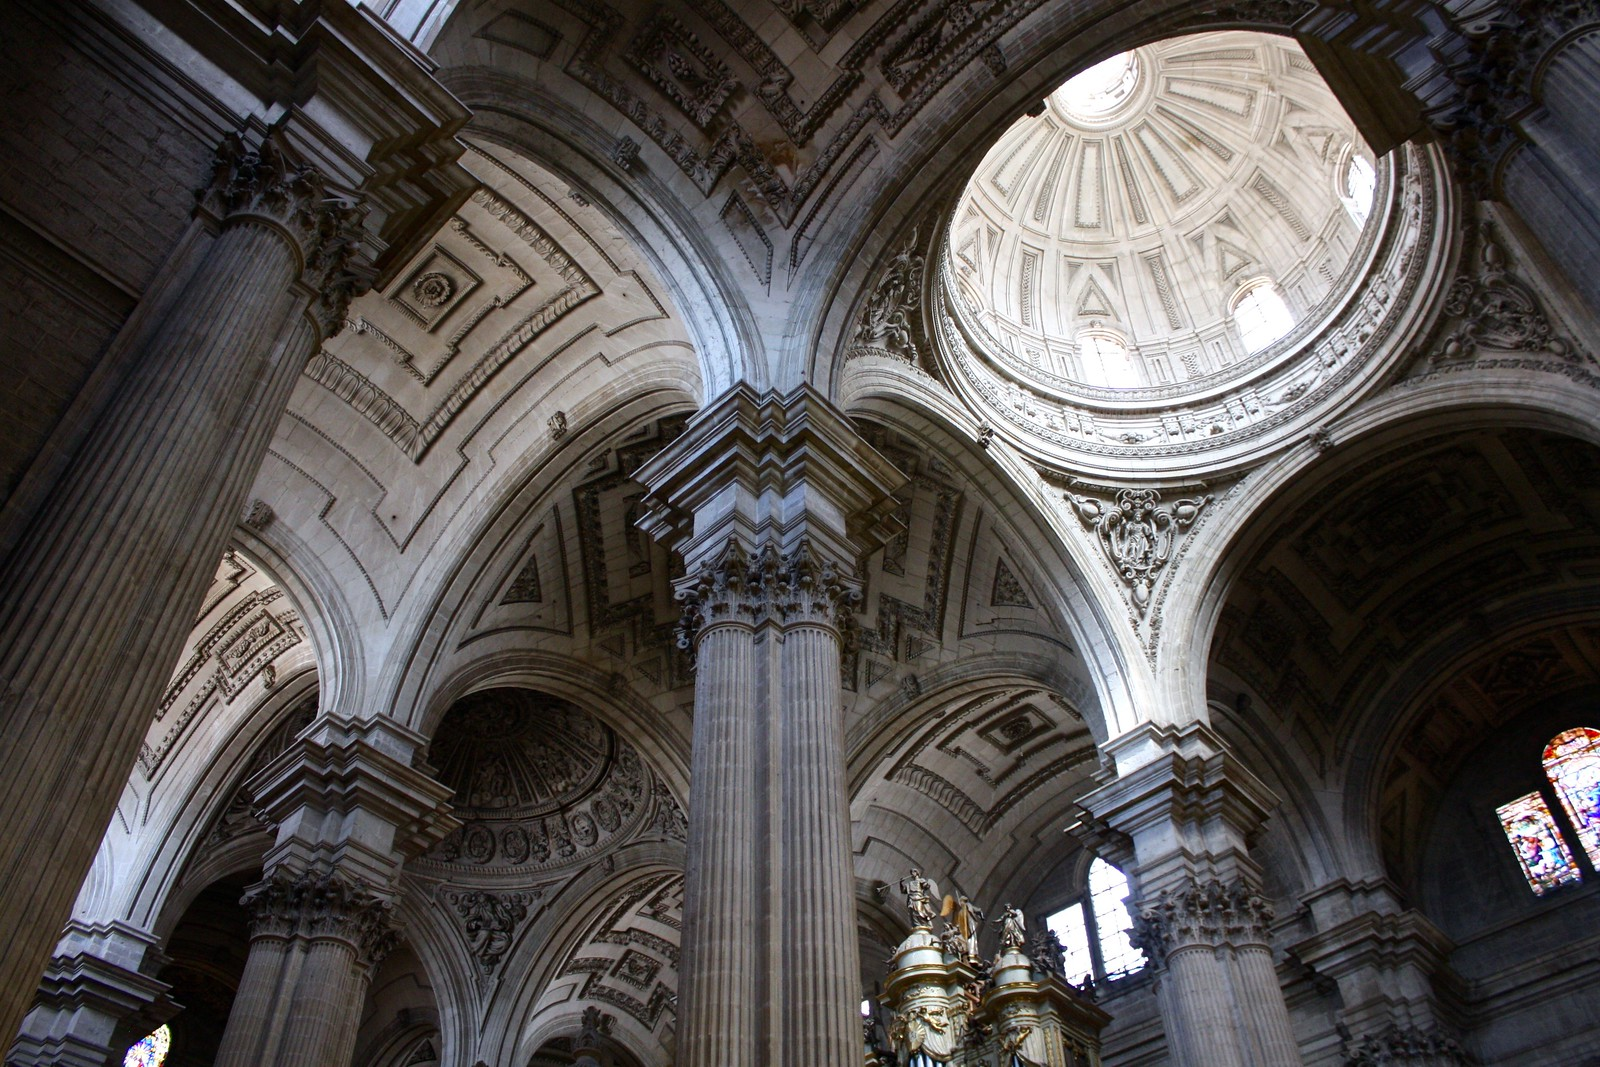 Ceiling vaults in Jaén cathedral, Spain